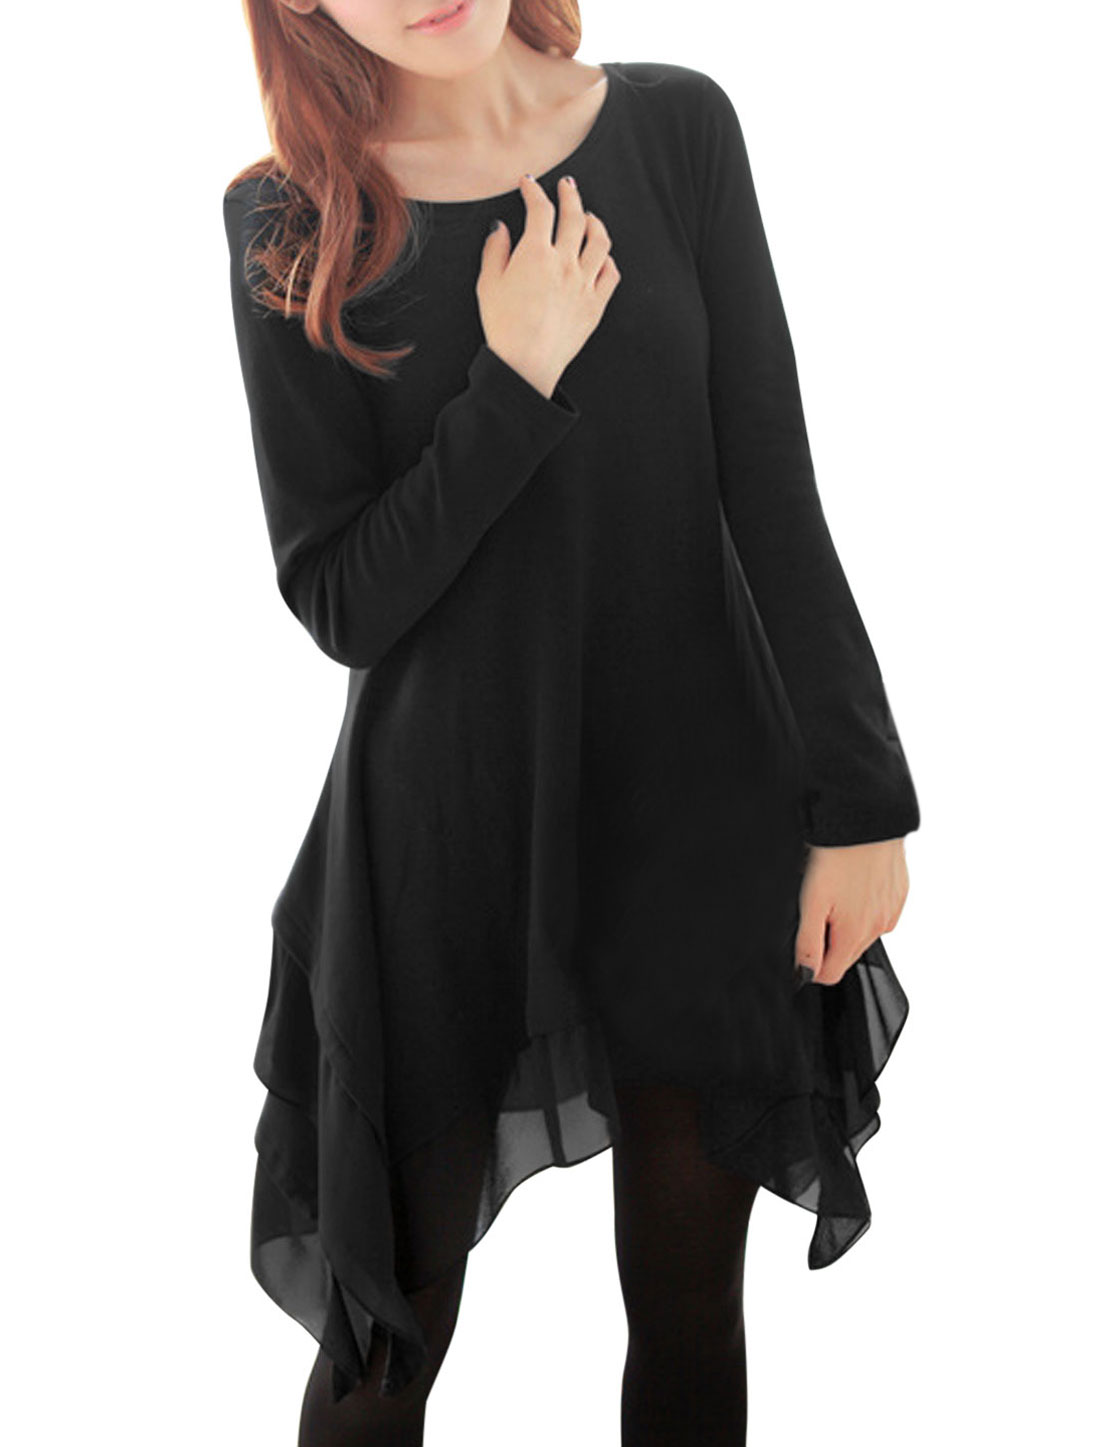 Ladies Black Long Sleeves Round Neck Asymmetrical Hem Splice Casual Dress S